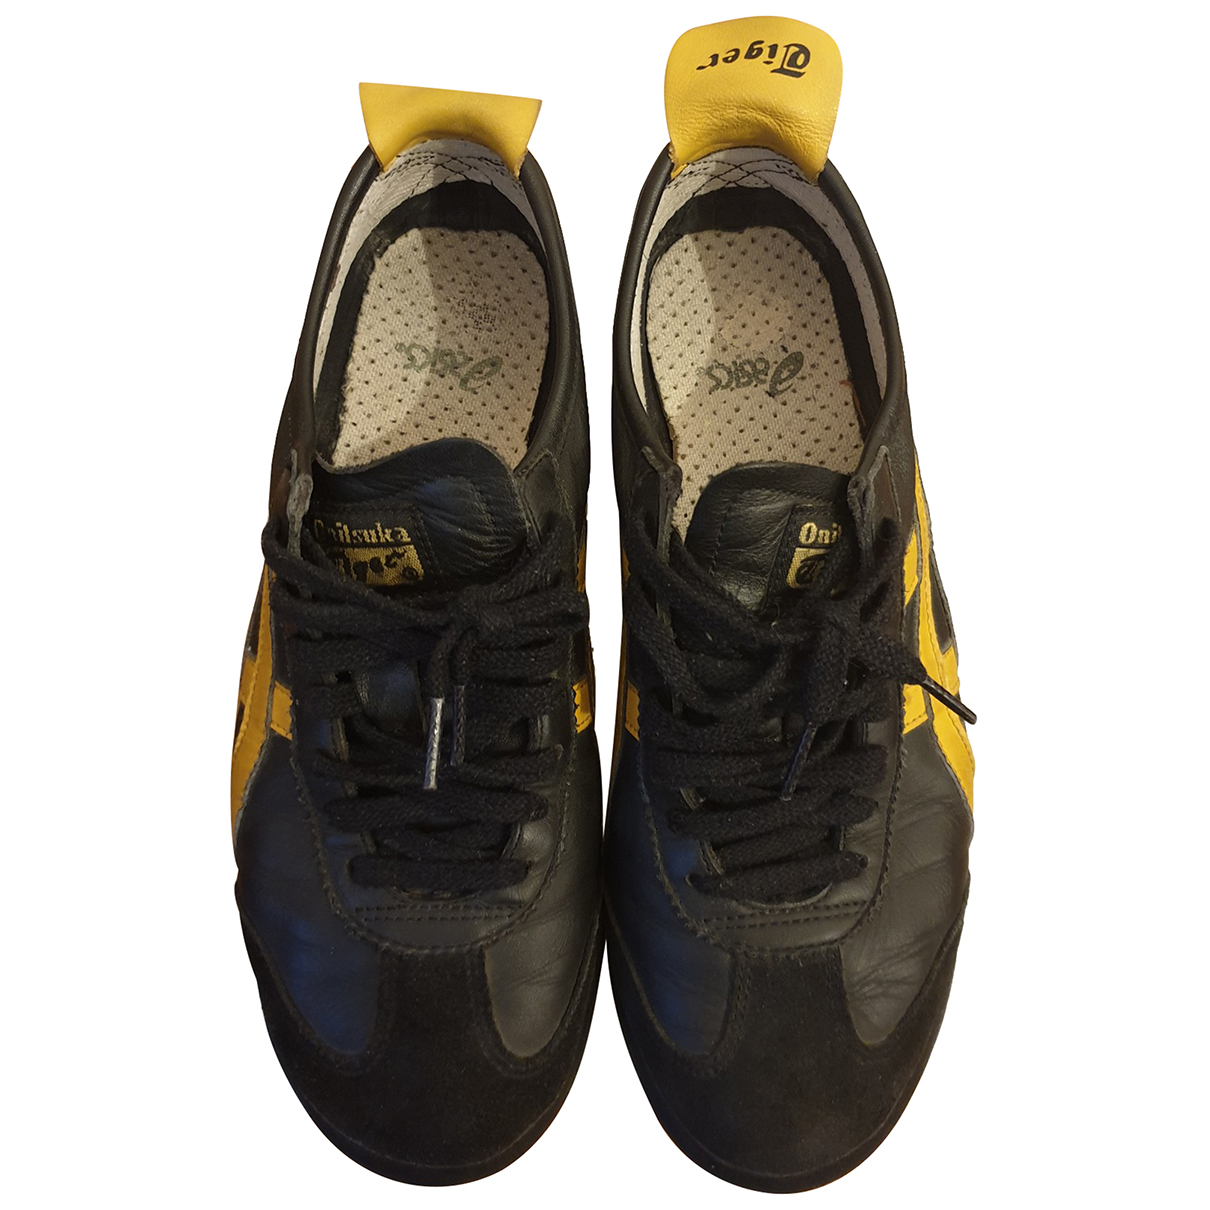 Onitsuka Tiger N Black Leather Trainers for Women 40.5 EU